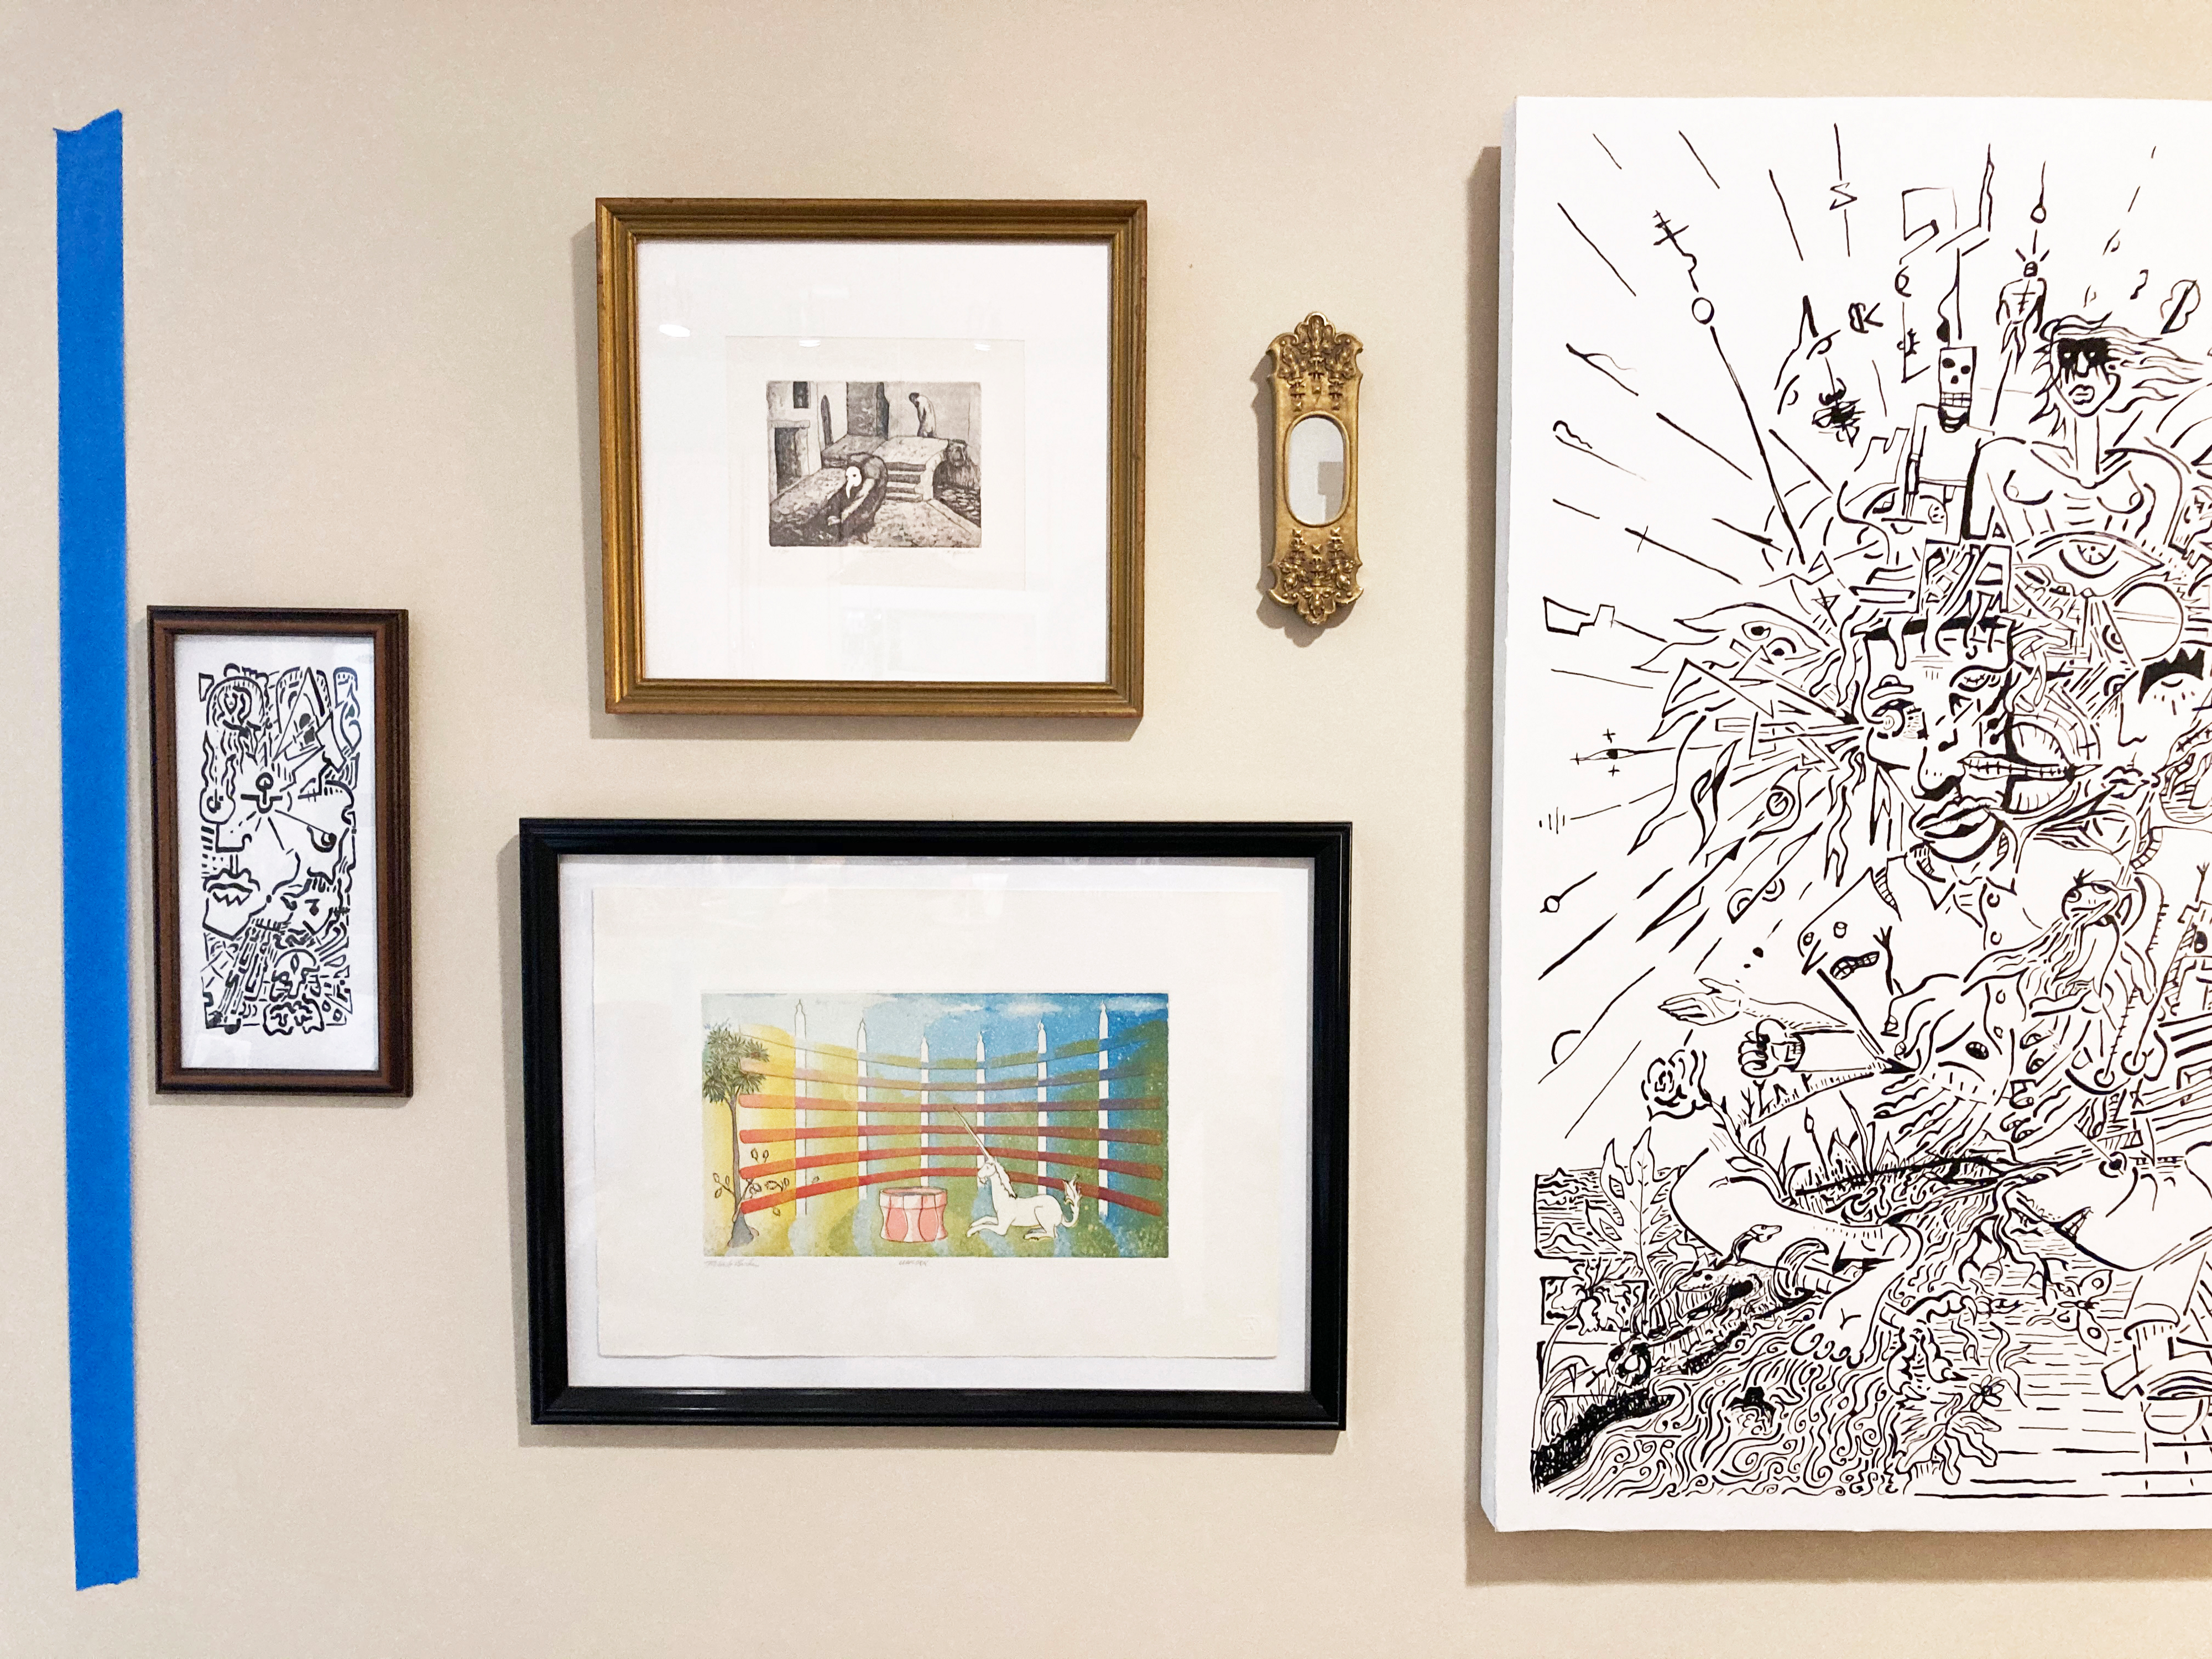 A grouping of artworks on a wall with a strip of blue painters tape on the left side.